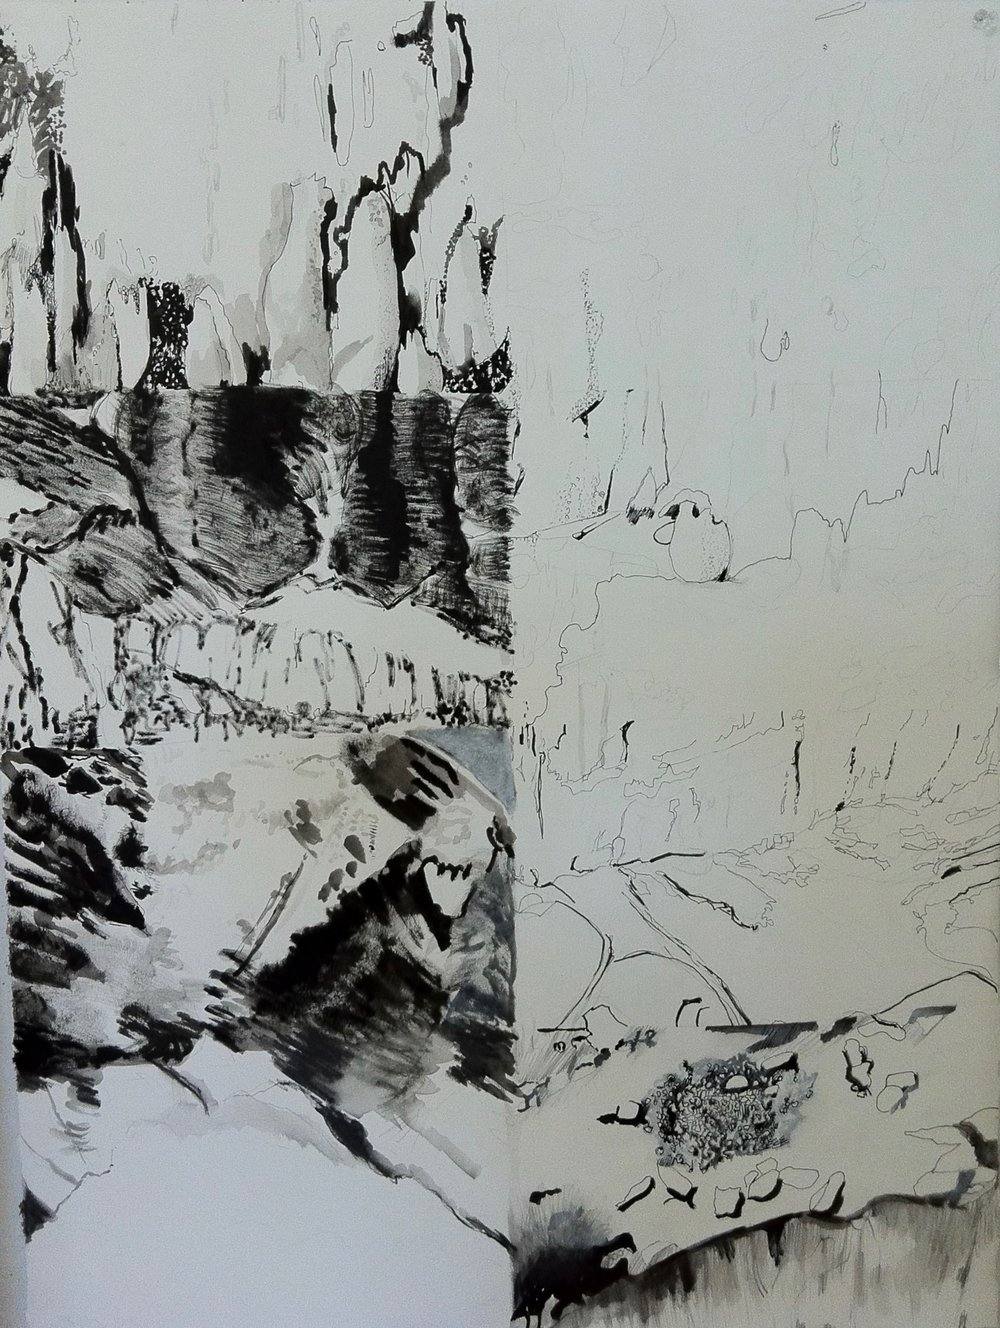 Fragmented Landscape Drawing - Jill Ehlert